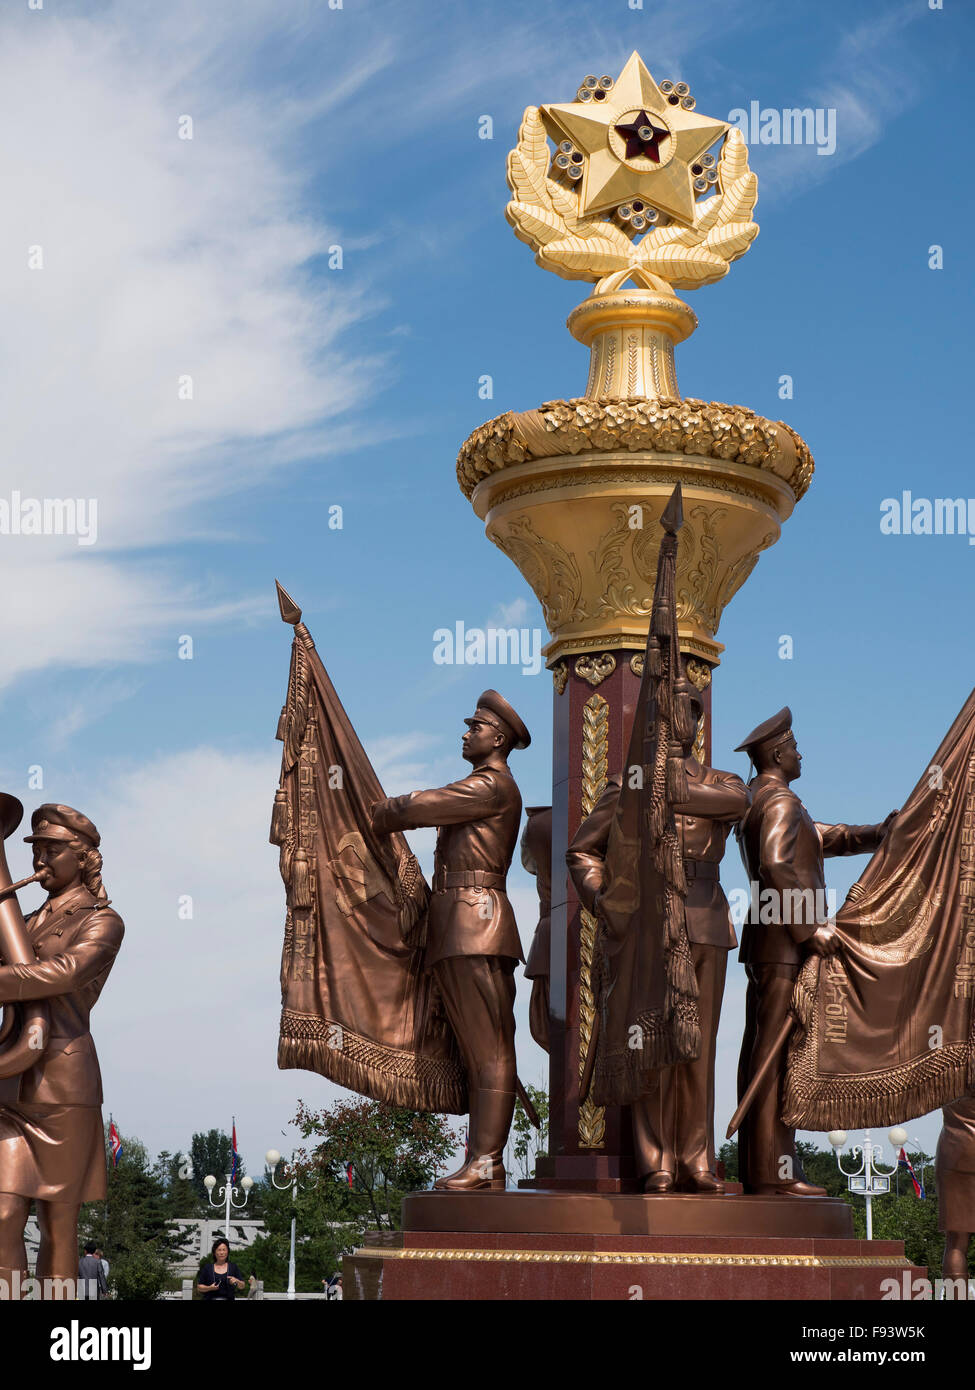 Park with mausoleum of King il Sung and Kim yong Il, Pyongyang, North Korea, Asia - Stock Image